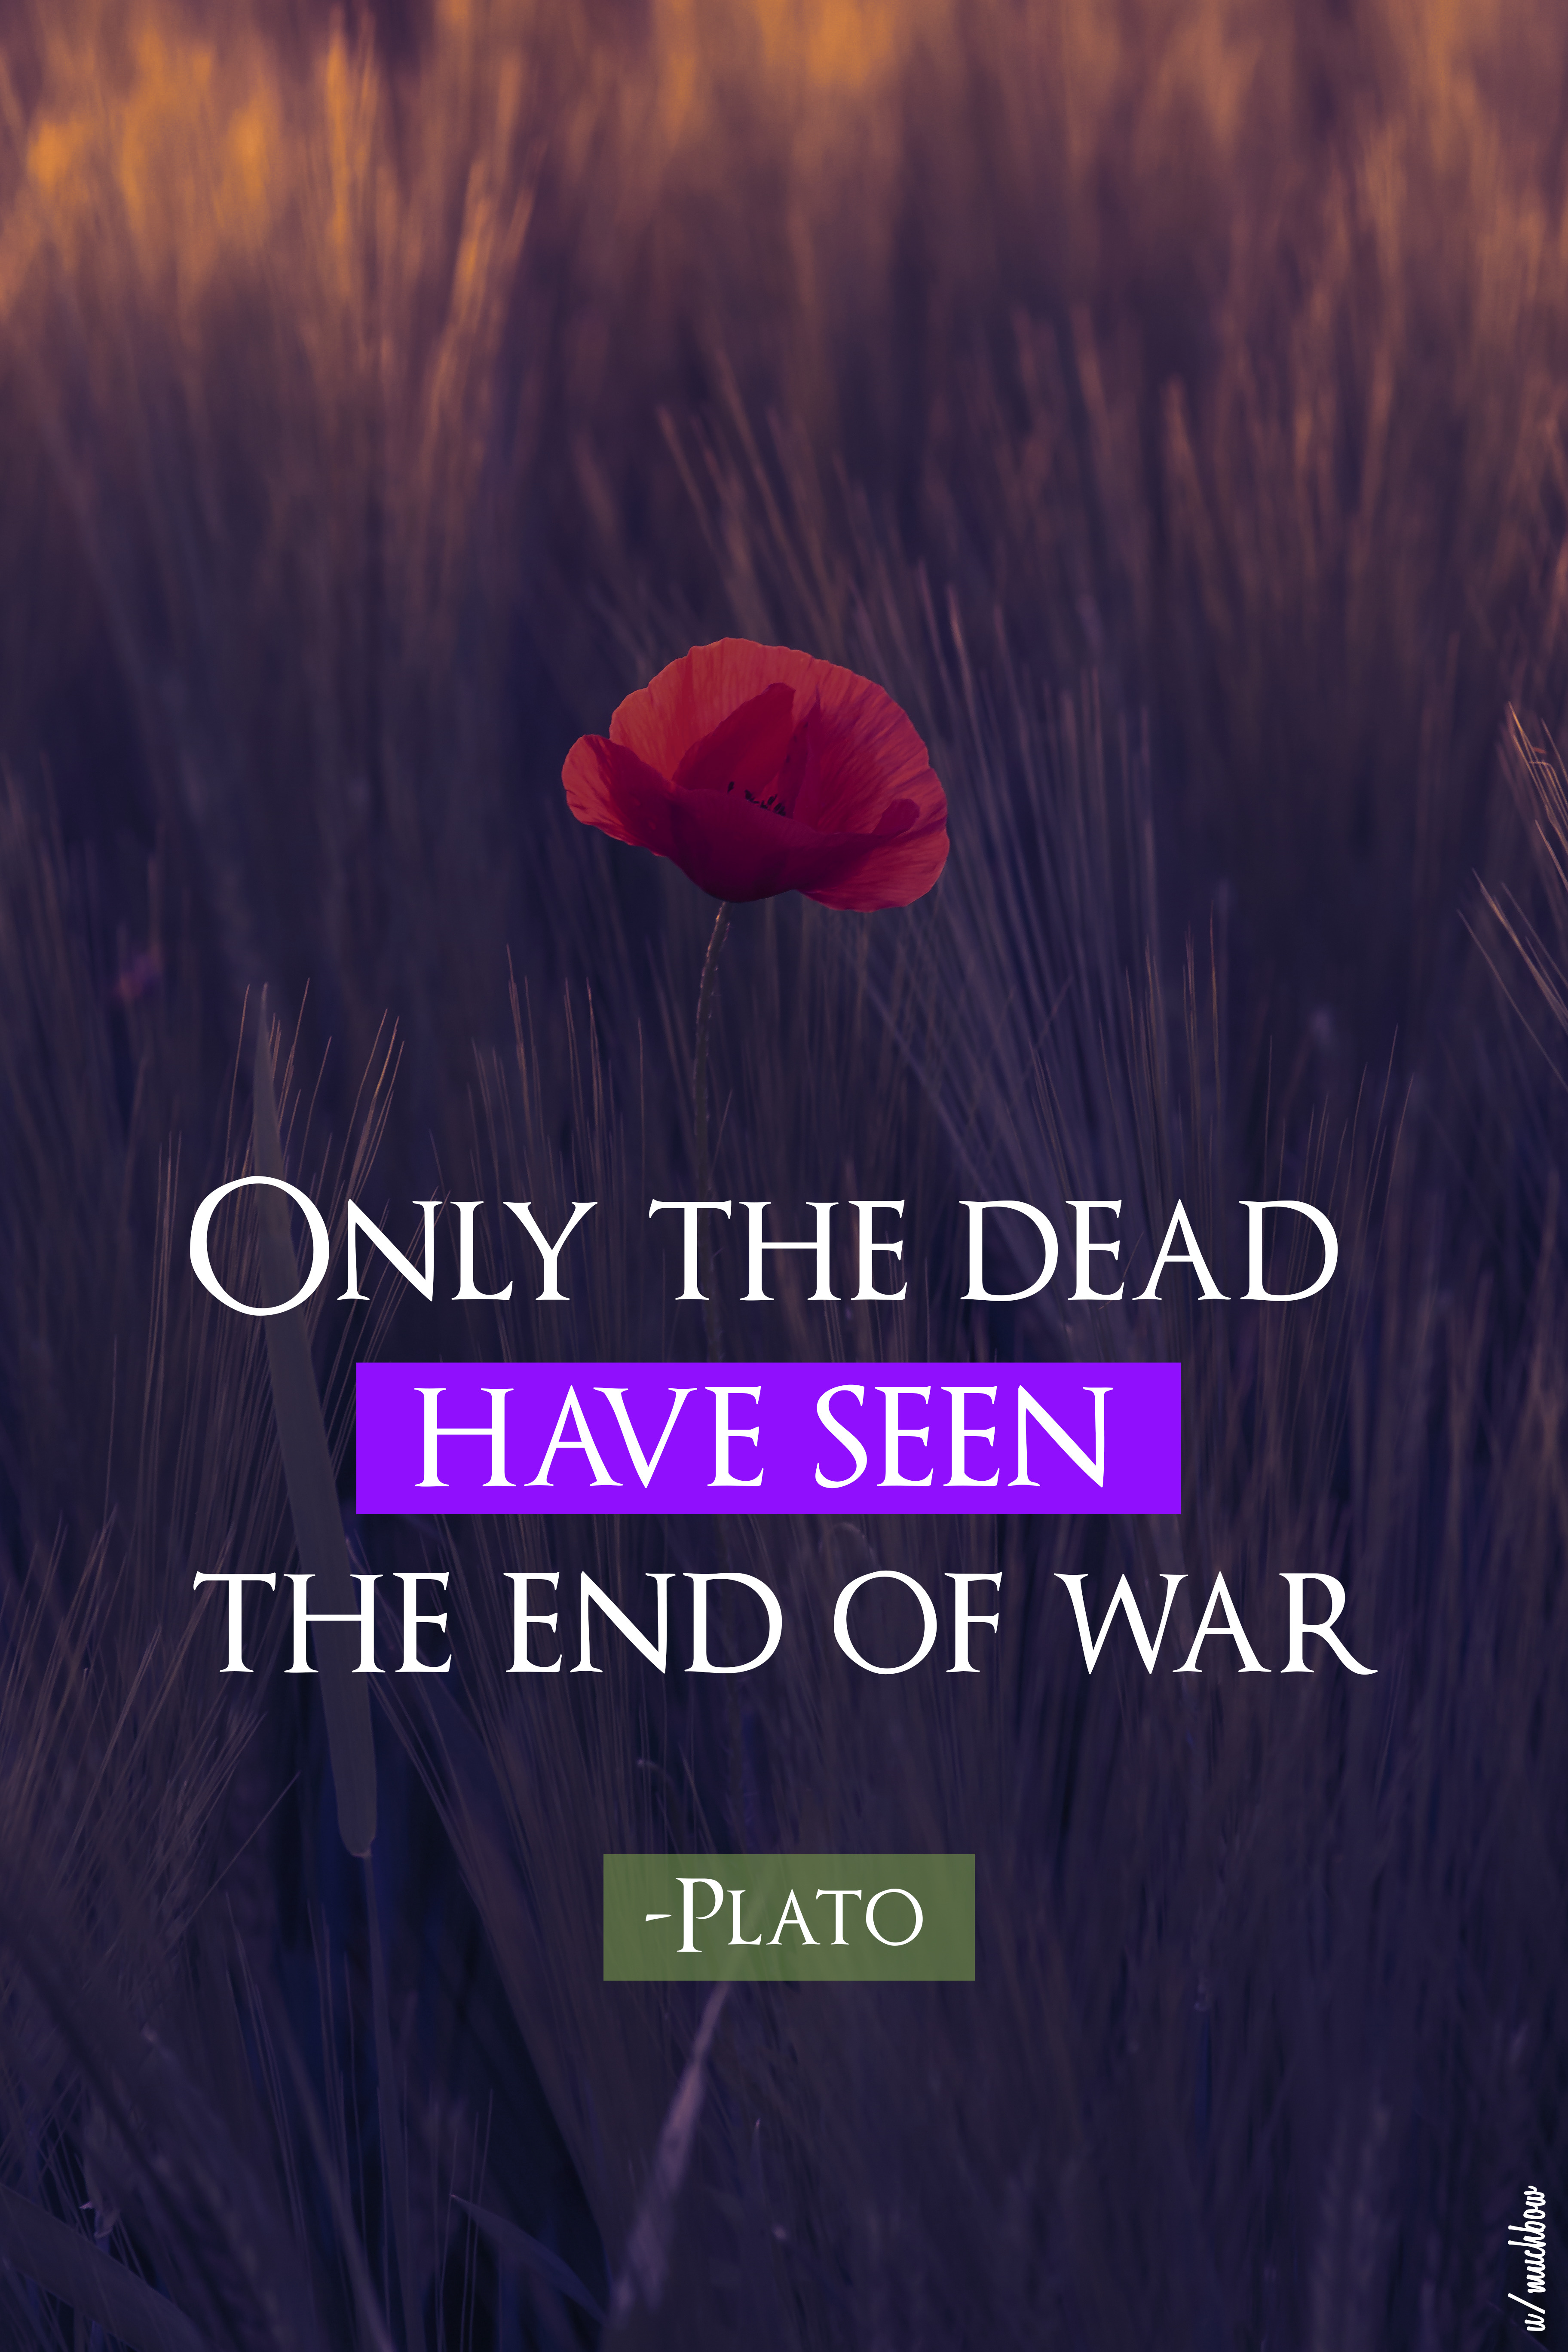 """Only the dead have seen the end of war."" – Plato [3648×5472] [OC]"